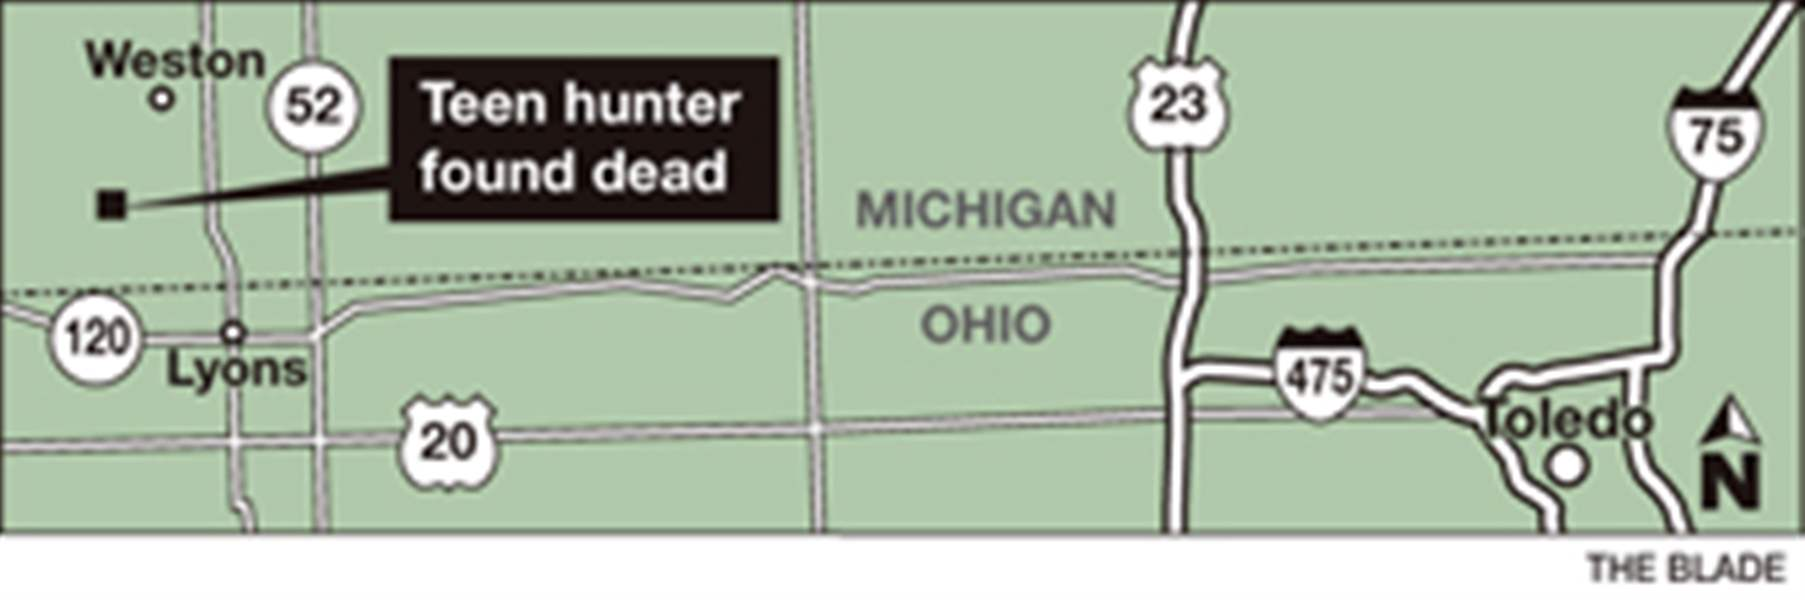 Missing-Lenawee-County-hunter-14-found-dead-in-field-2